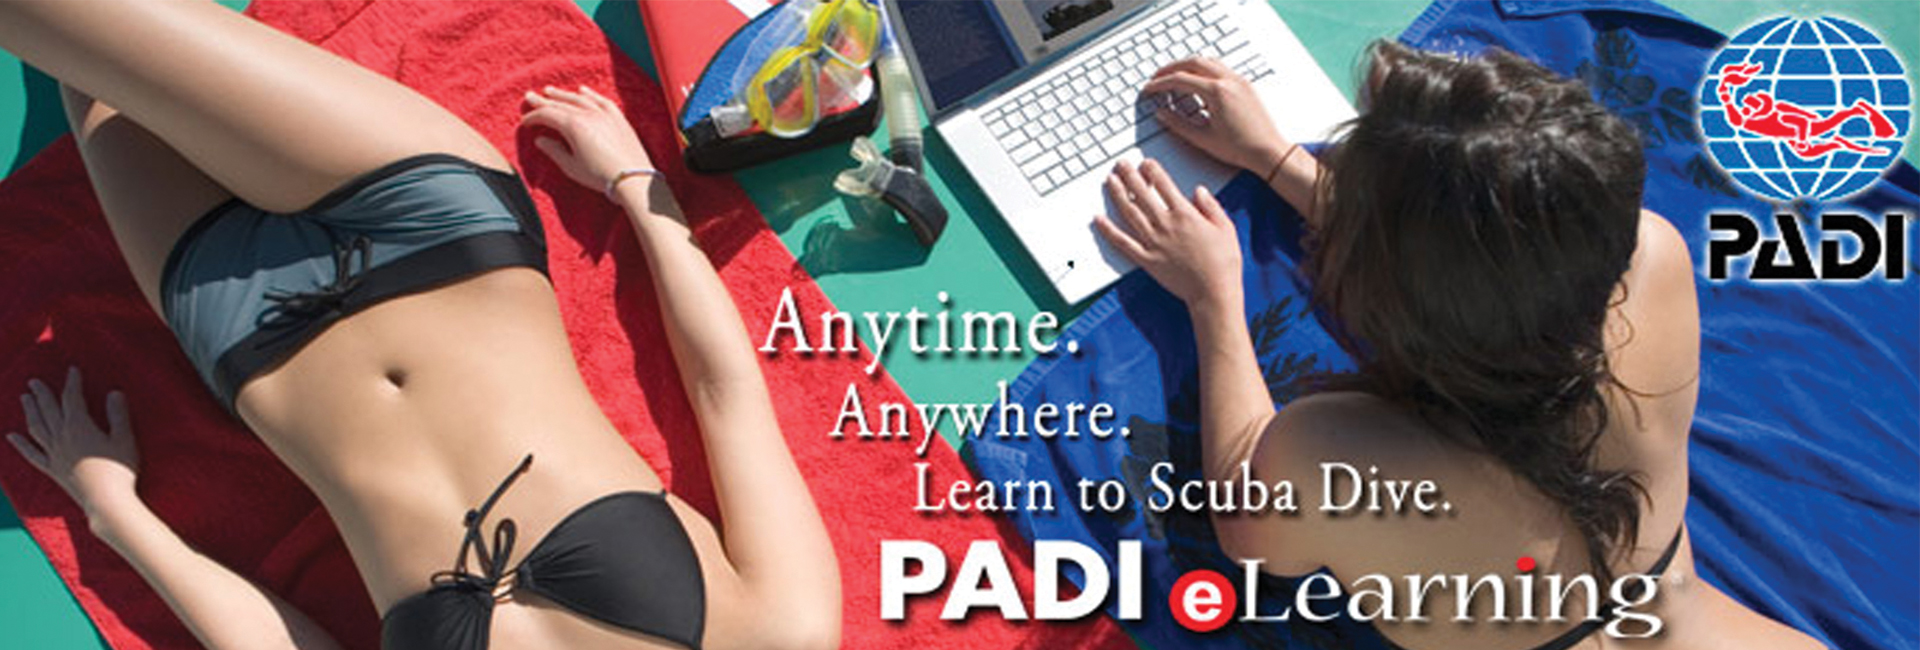 padi-elearning-girls